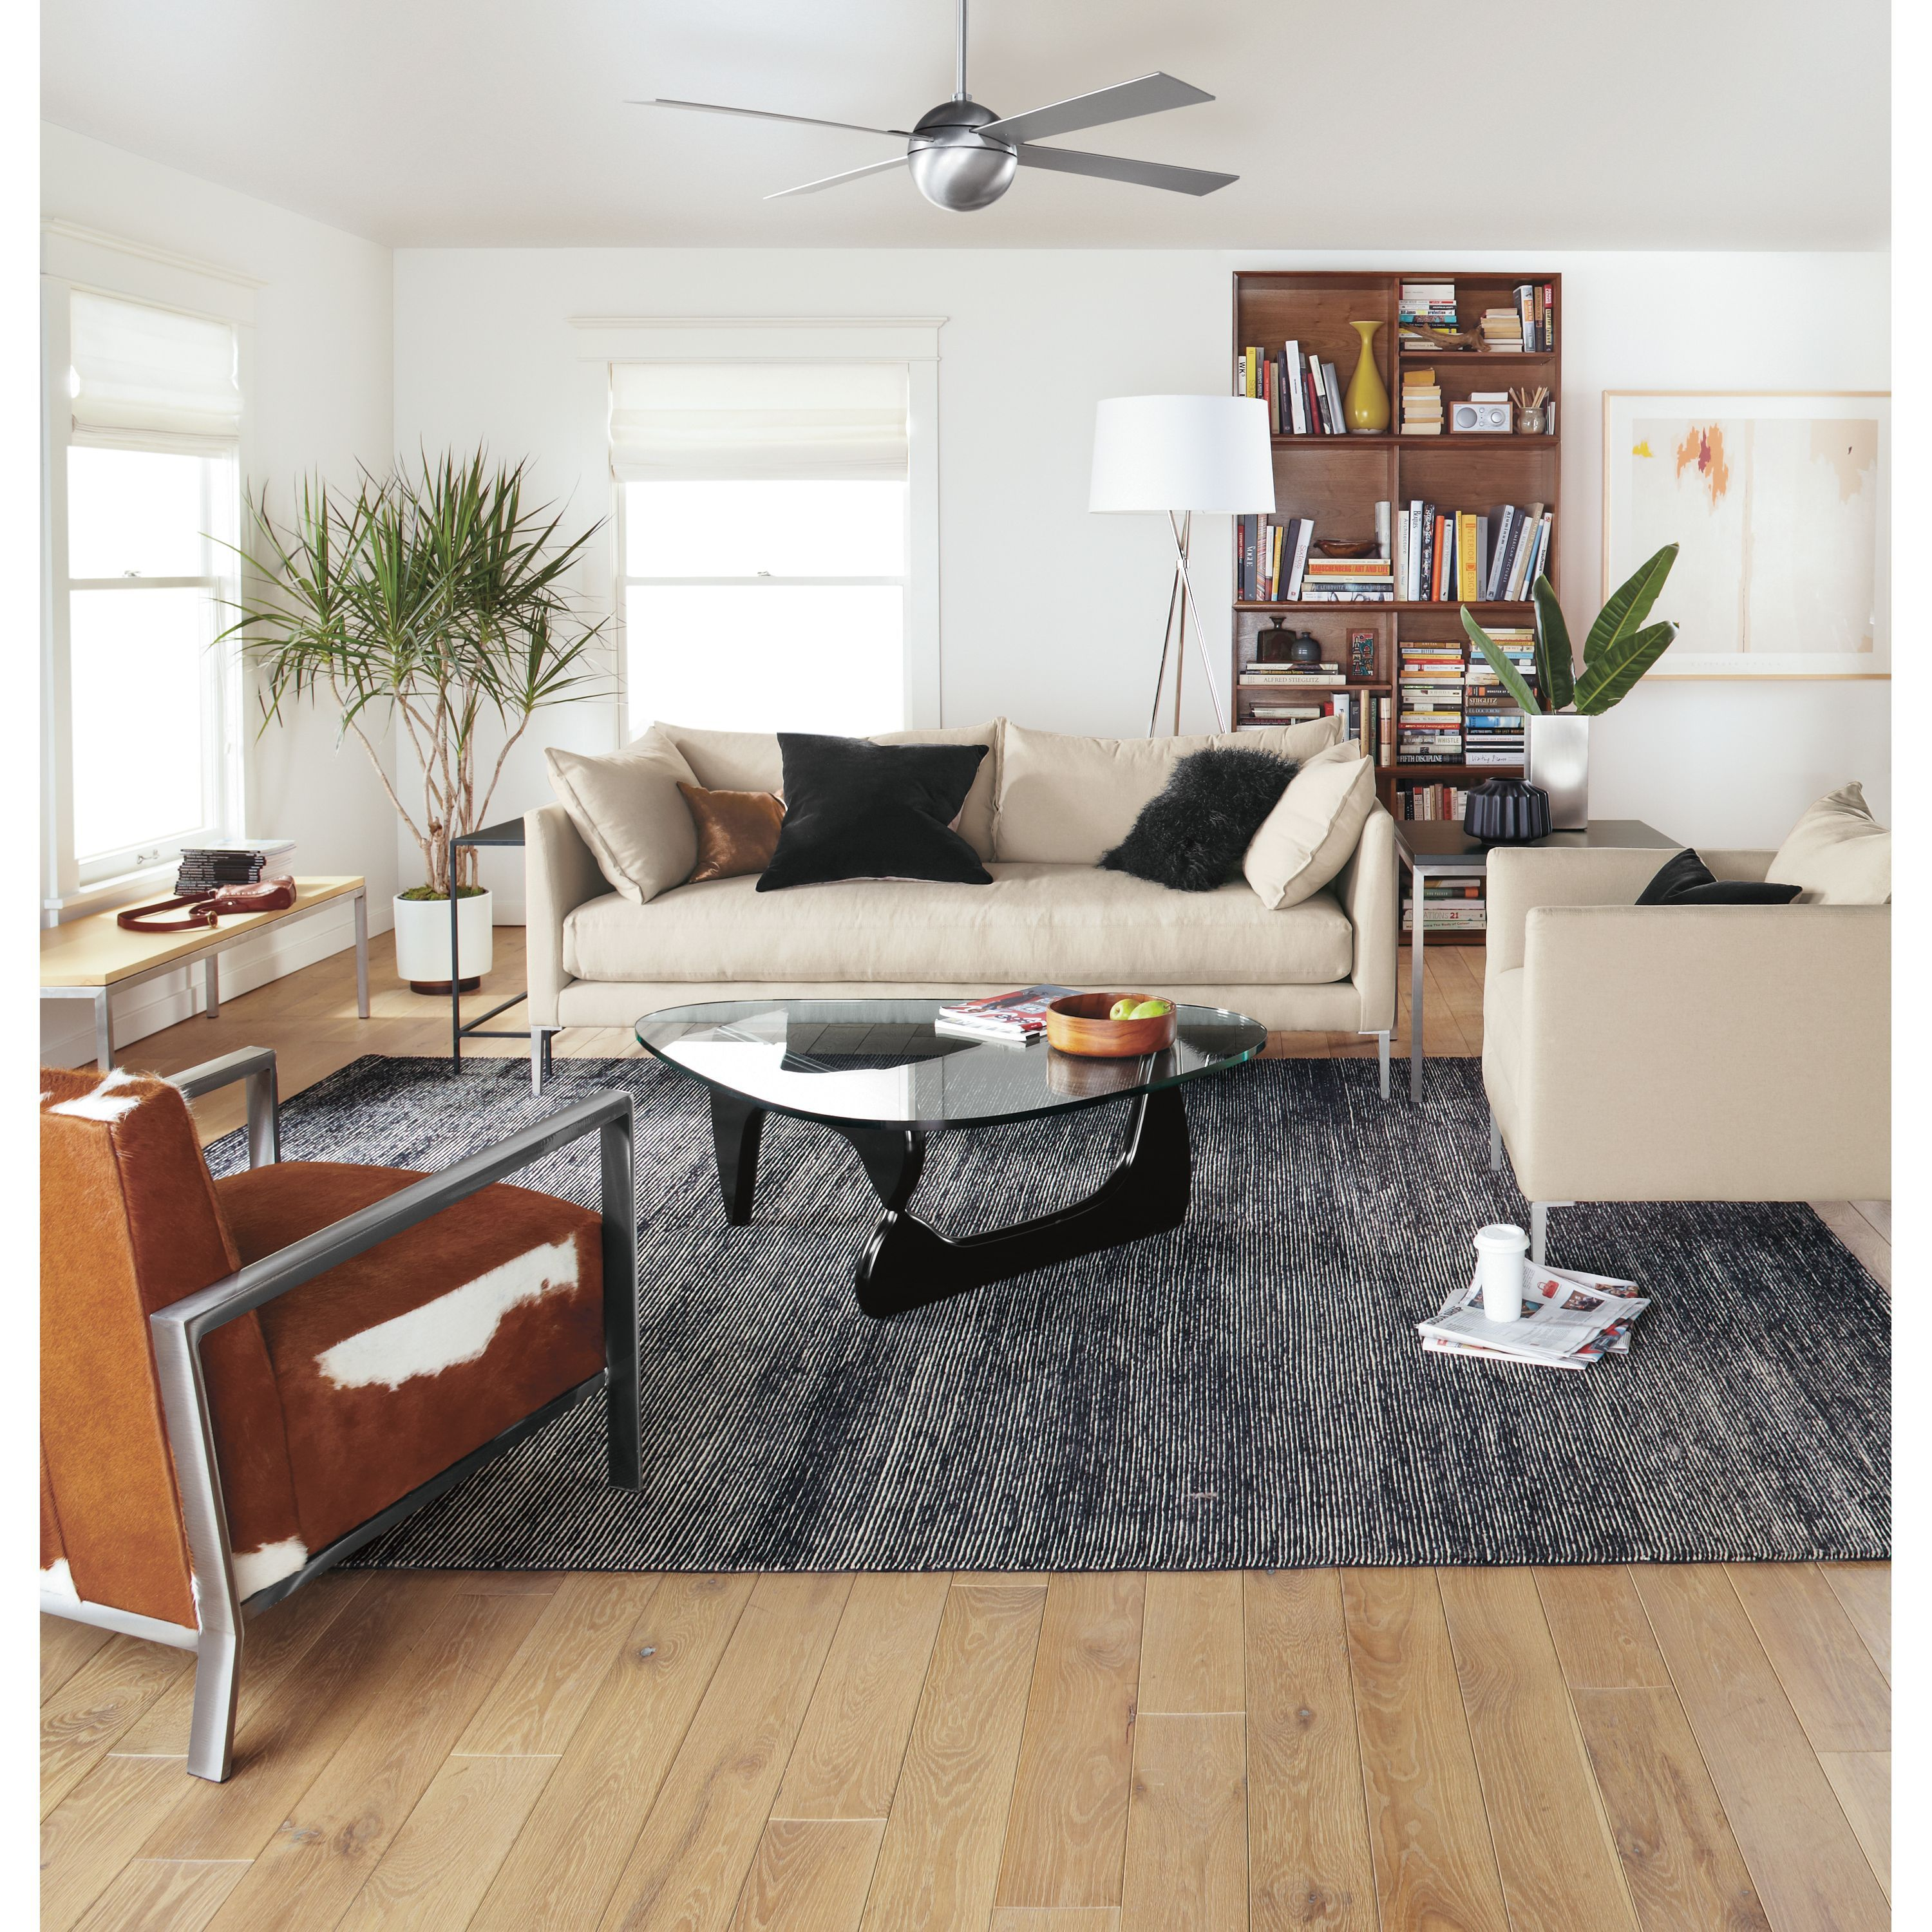 Room Board Ball Ceiling Fan Small Living Room Design Room Home